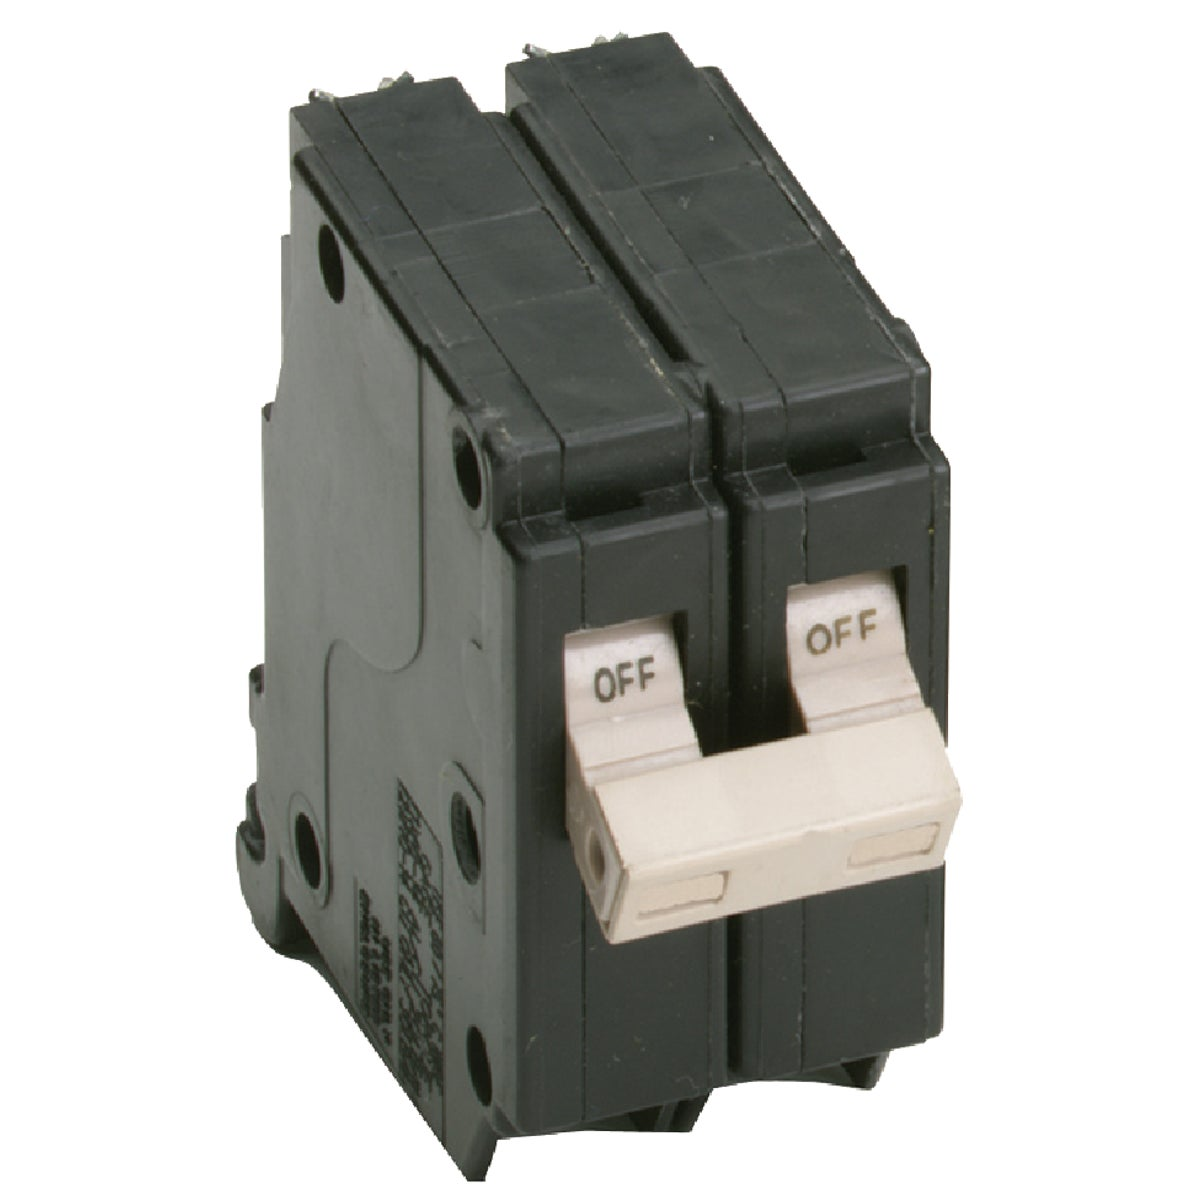 70A 2P CIRCUIT BREAKER - CH270 by Eaton Corporation